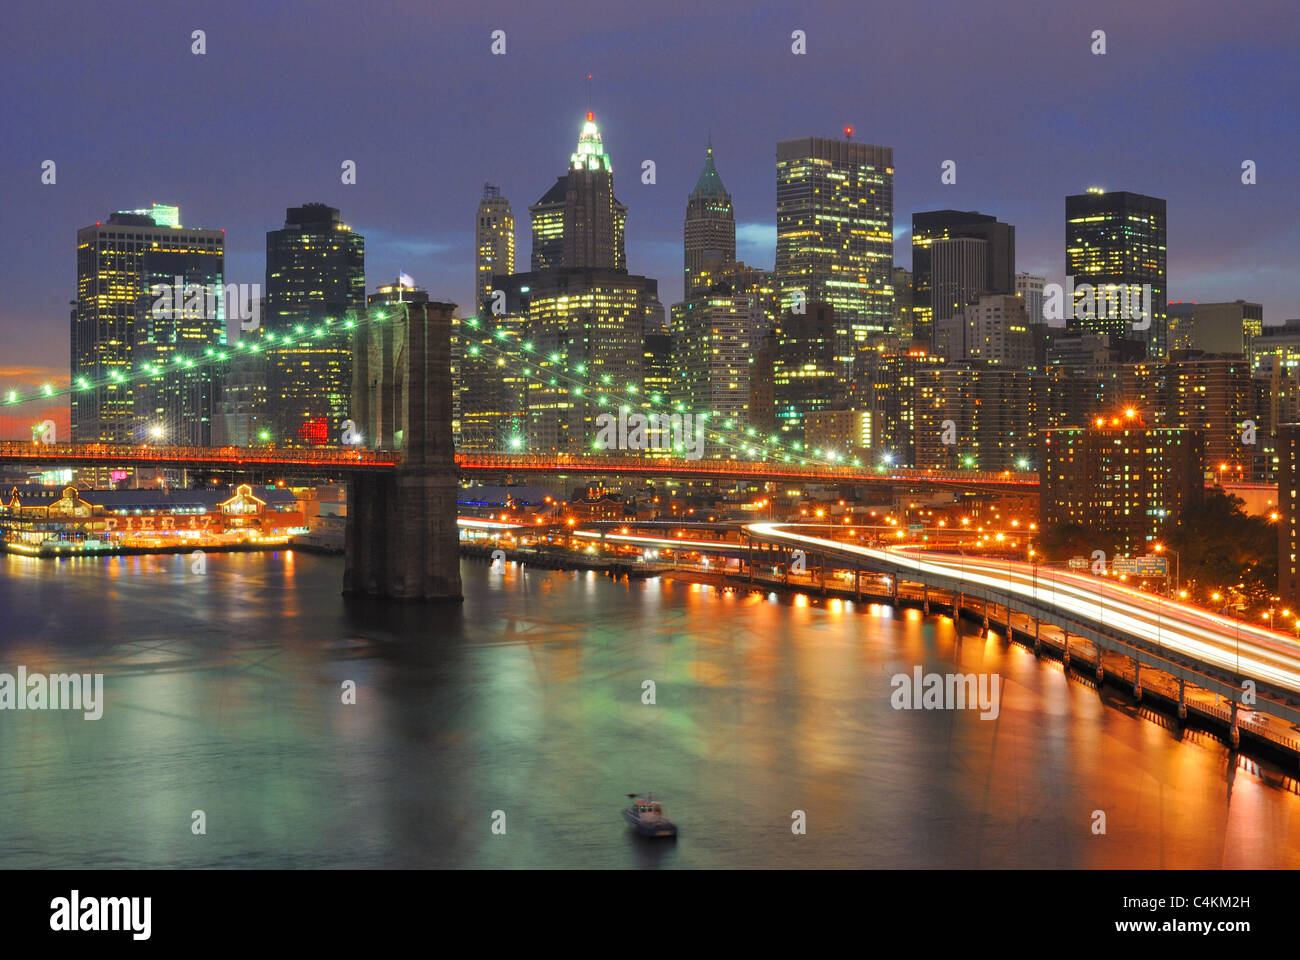 The Brooklyn Bridge Juxtaposed against the downtown New York City Skyline. - Stock Image